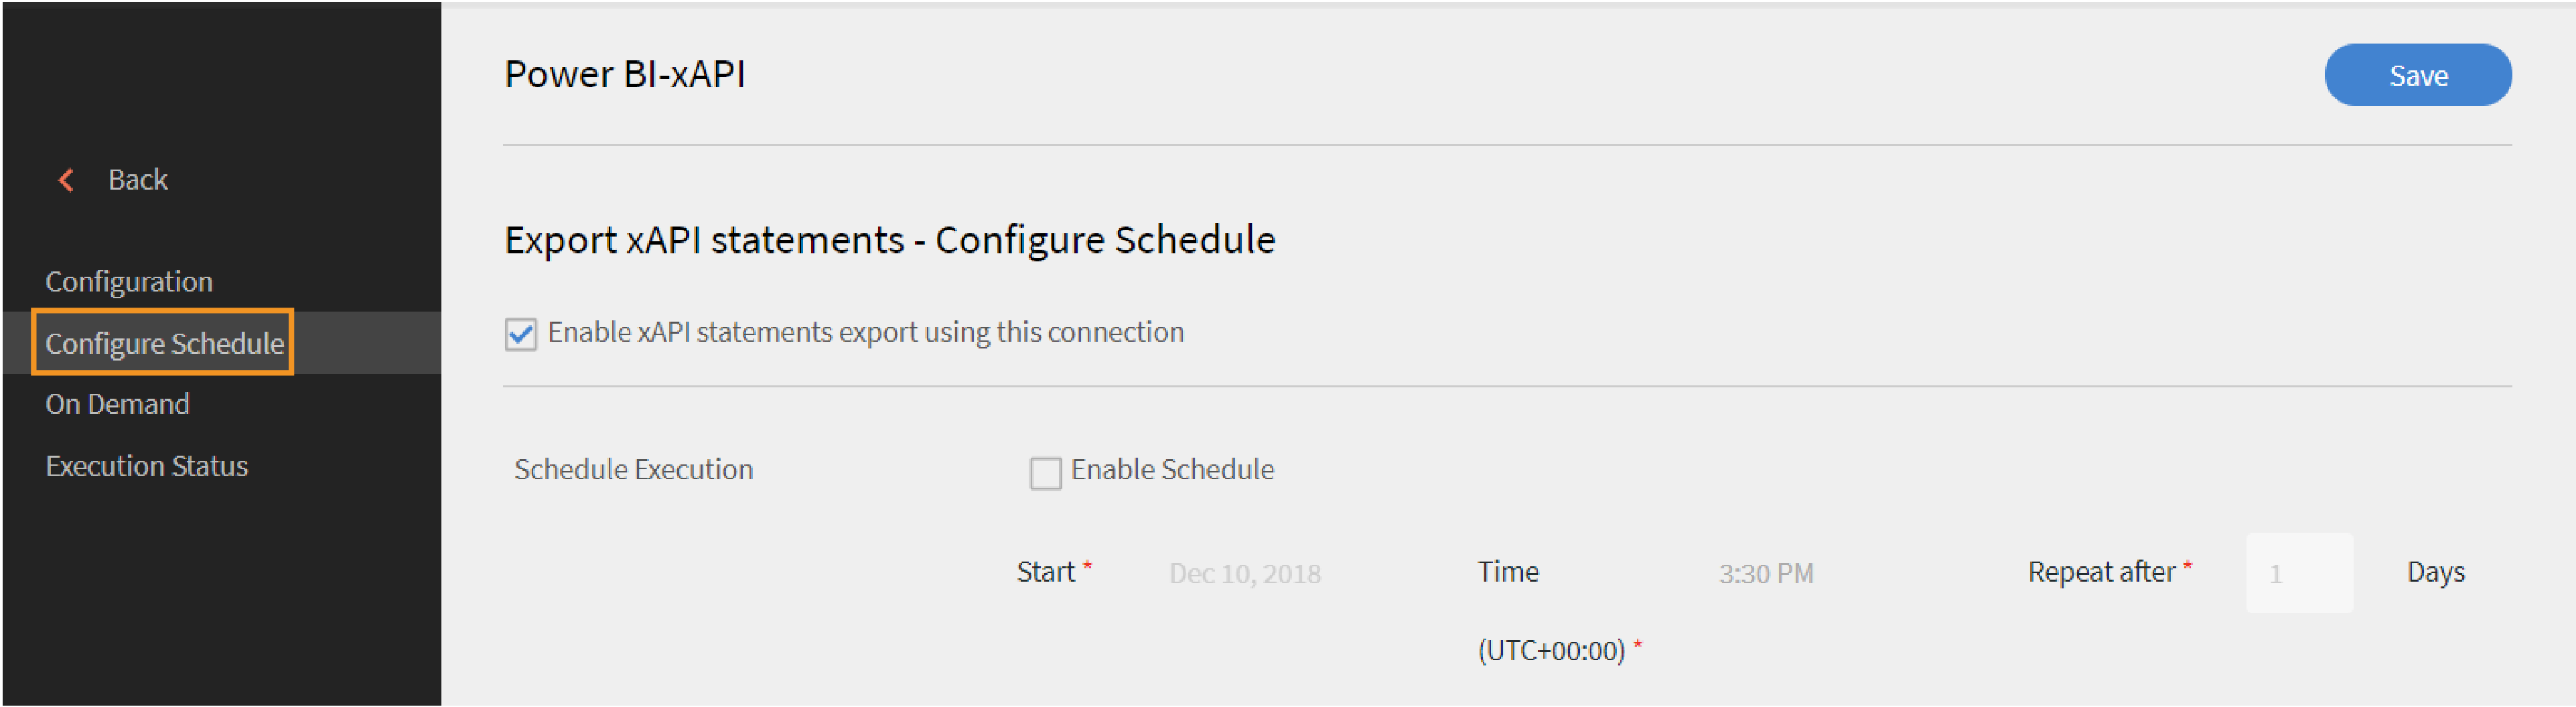 xAPI Export Configure Schedule